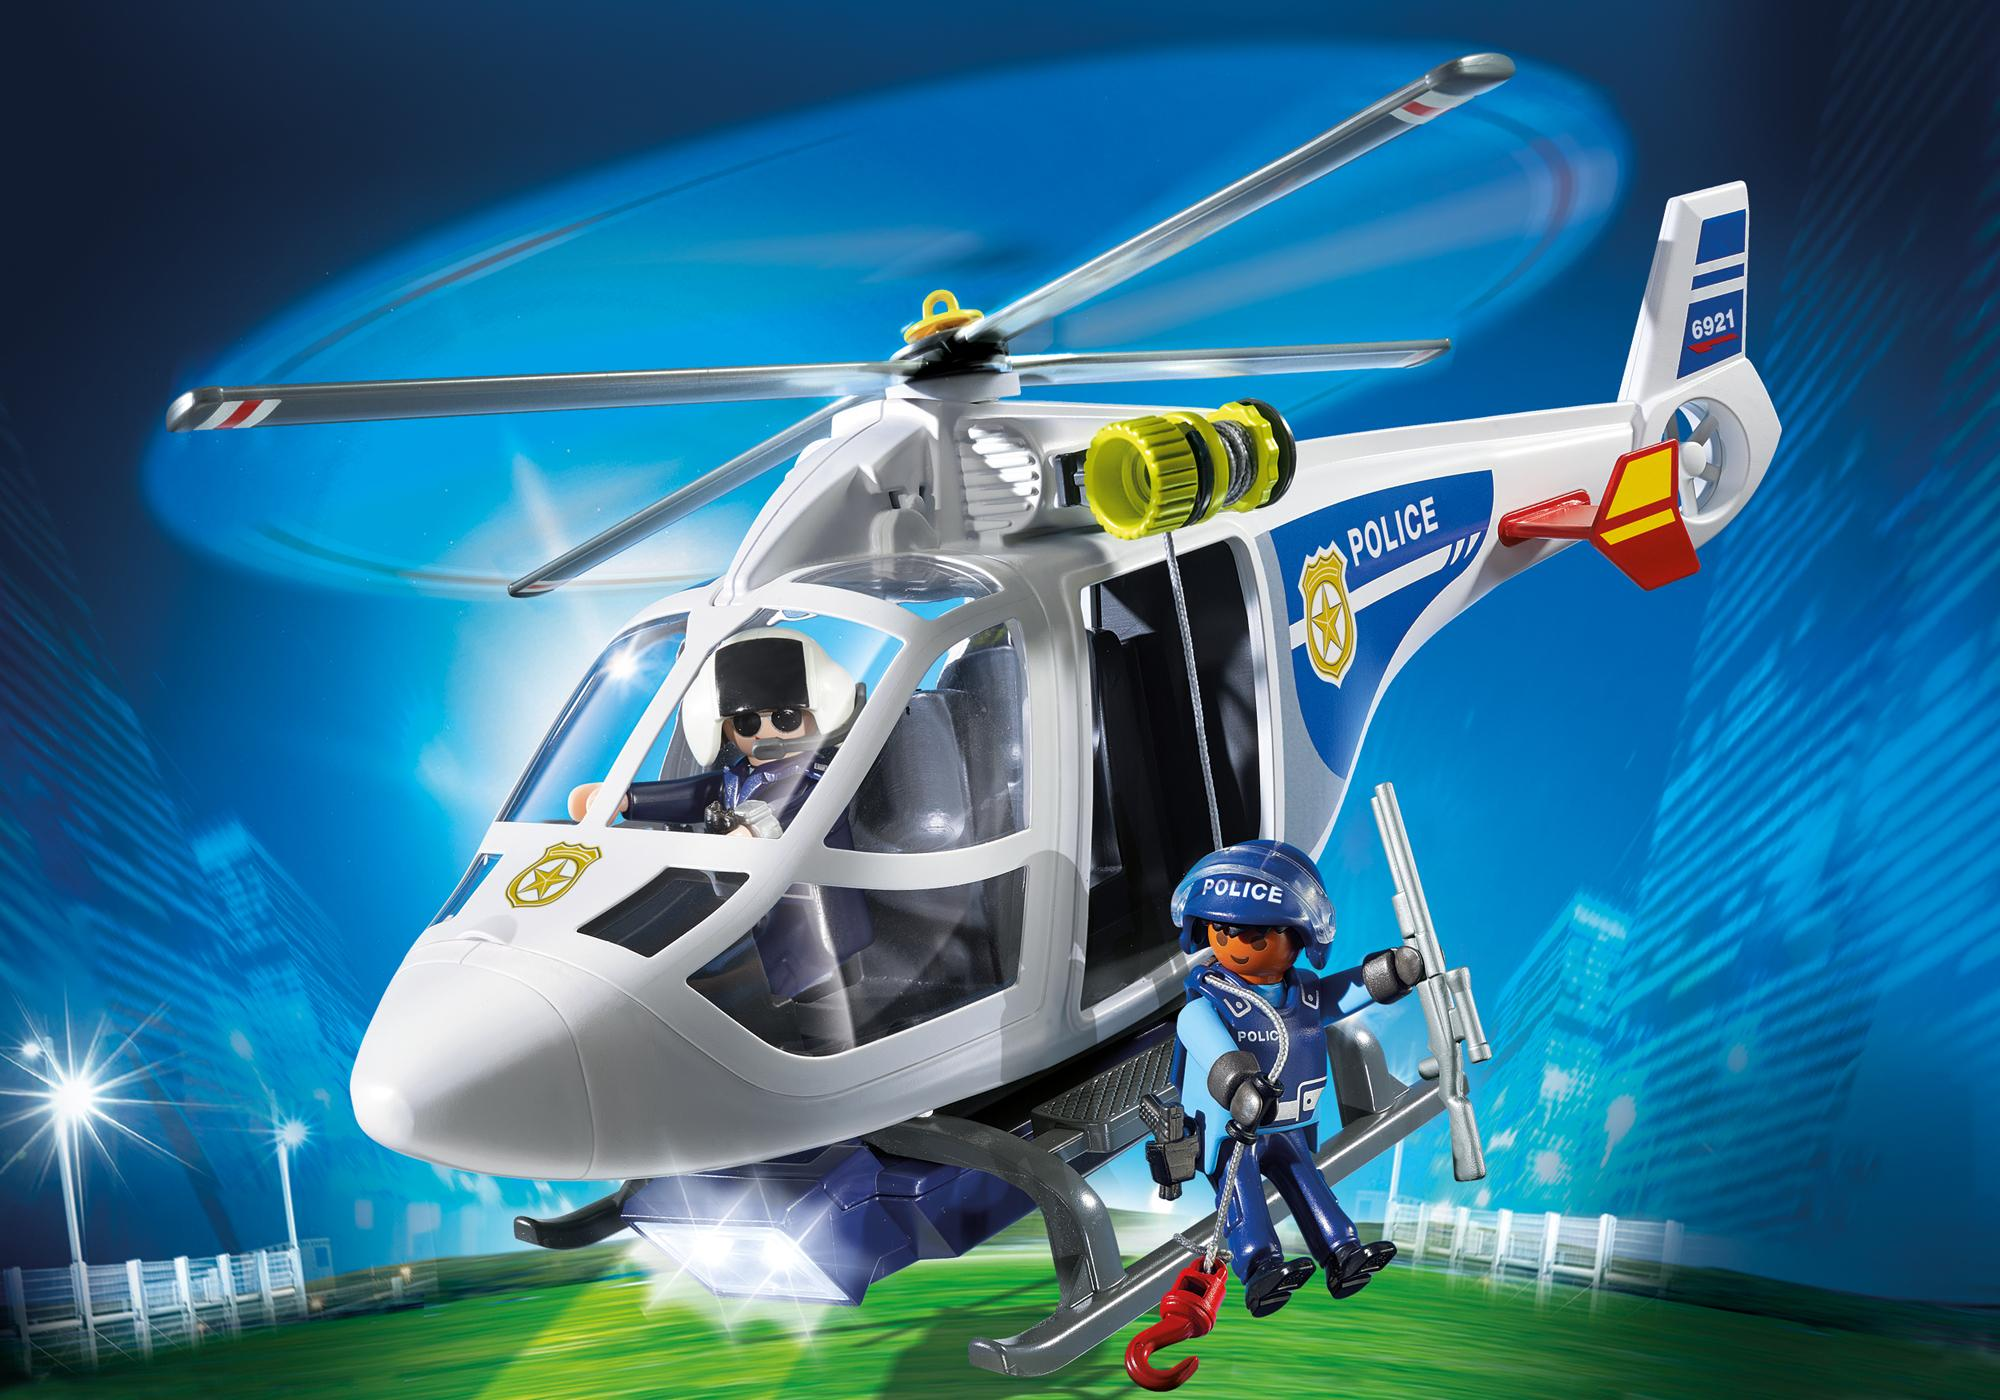 http://media.playmobil.com/i/playmobil/6921_product_detail/Police Helicopter with LED Searchlight